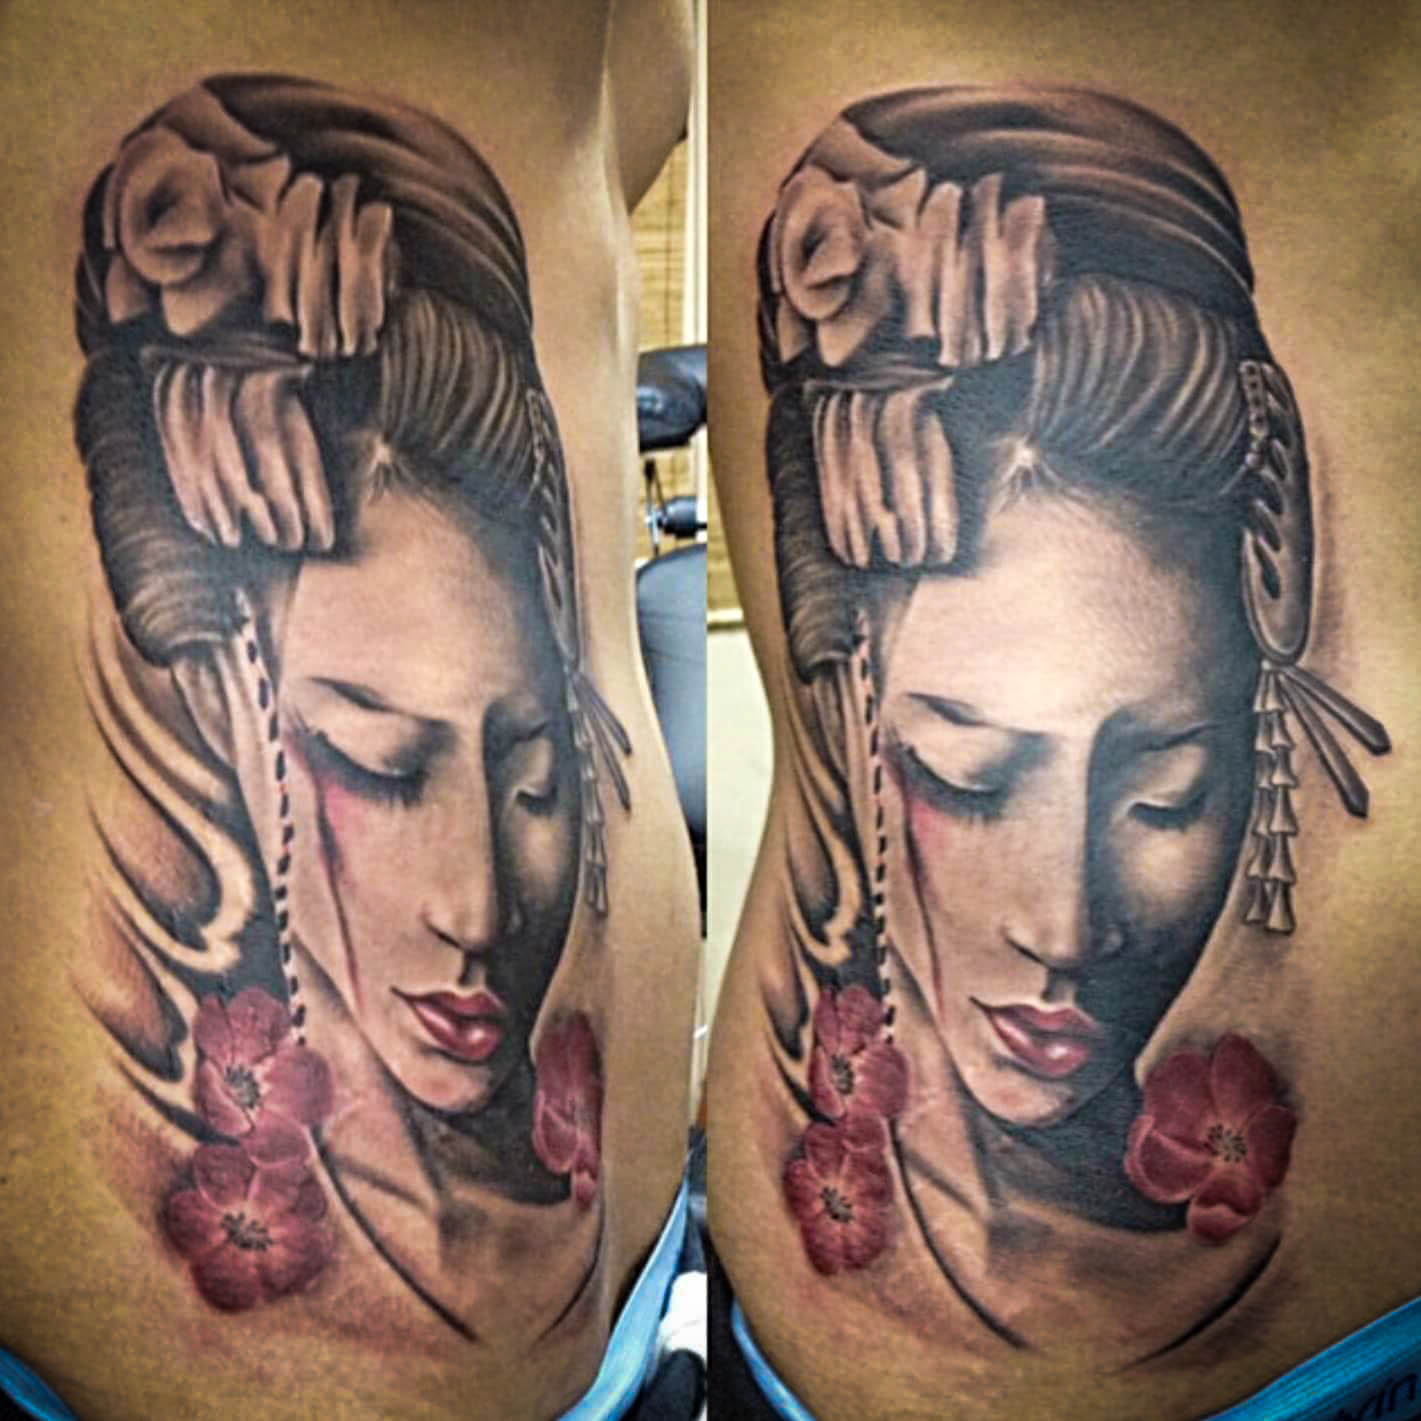 Q Tattoo in Huntington Beach - Quan - lady goddess